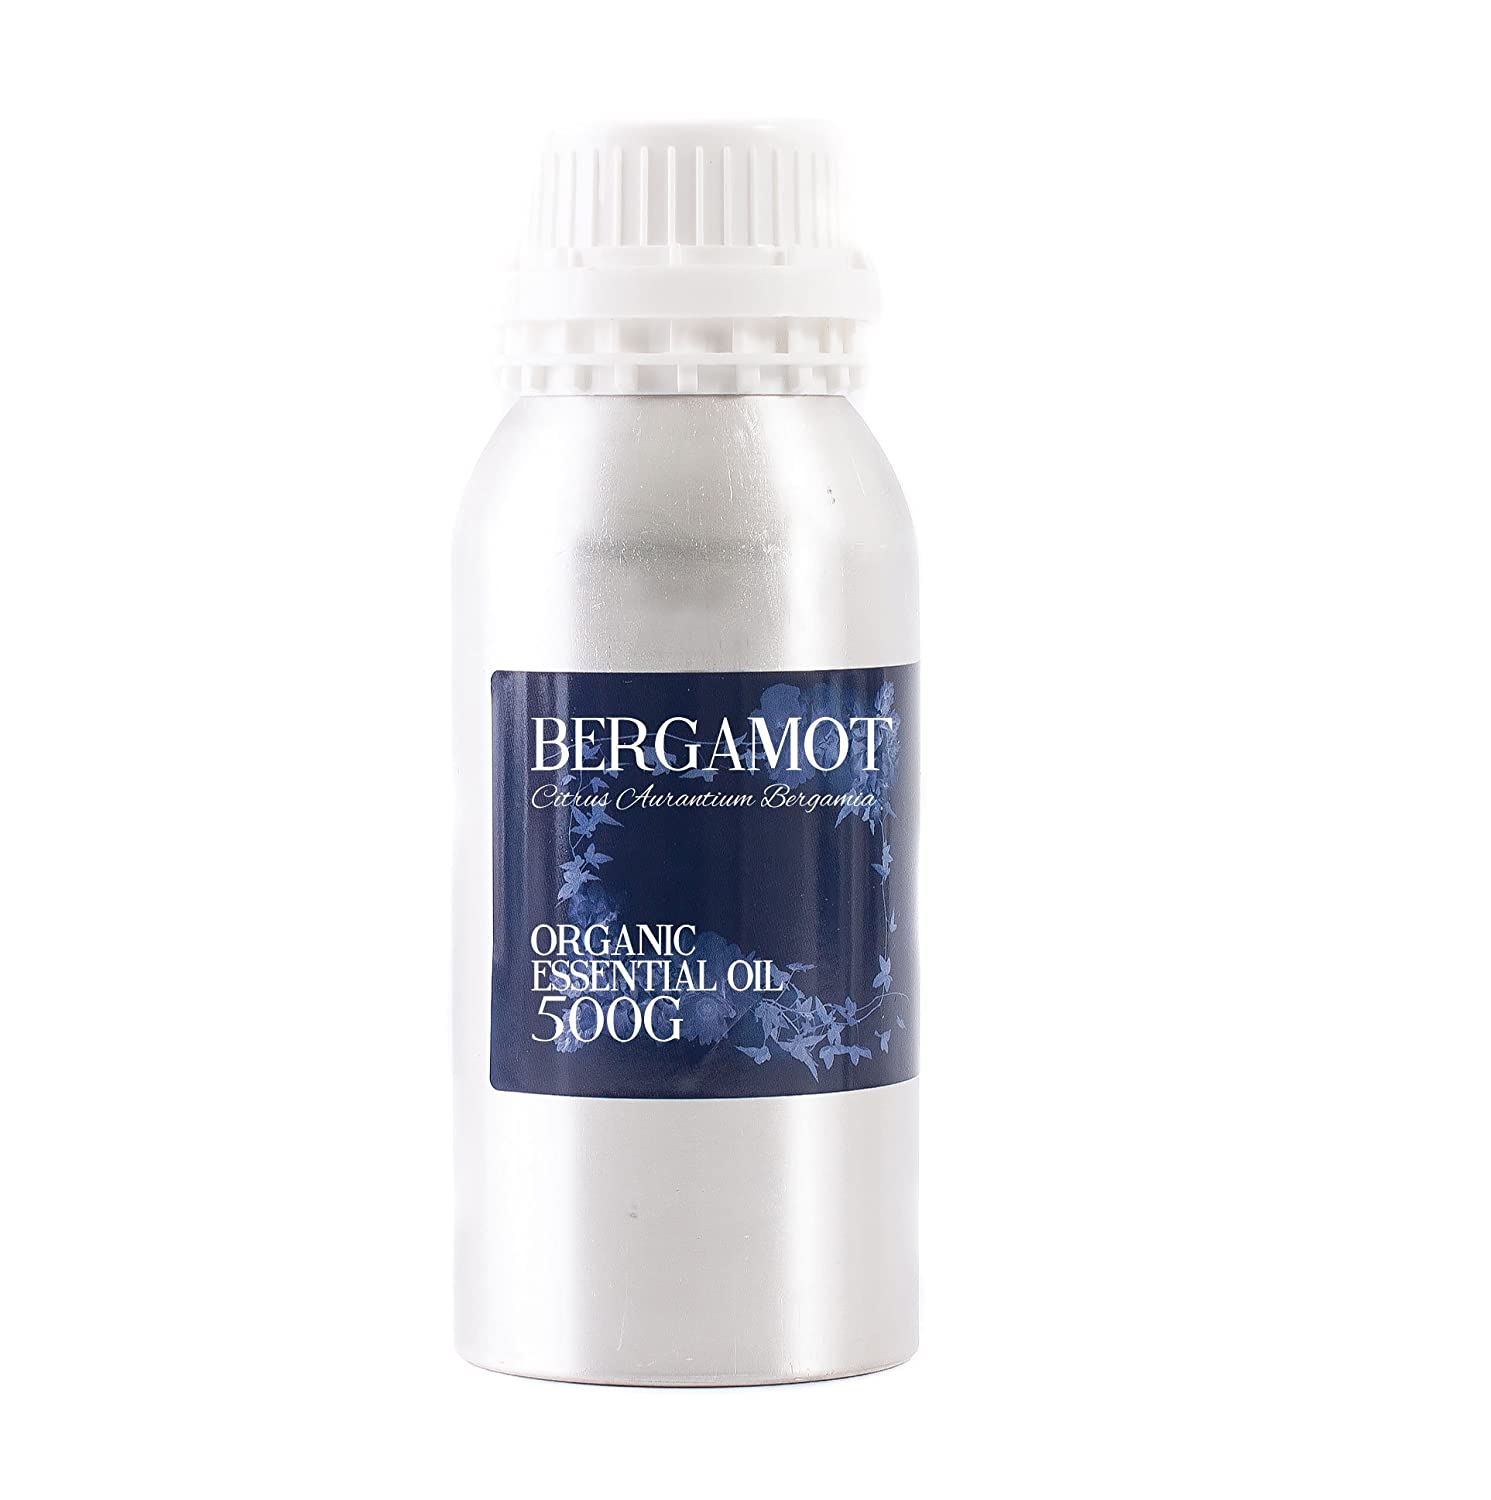 Mystic Moments | Bergamot Organic Essential Oil - 500g - 100% Pure B07CS117GK